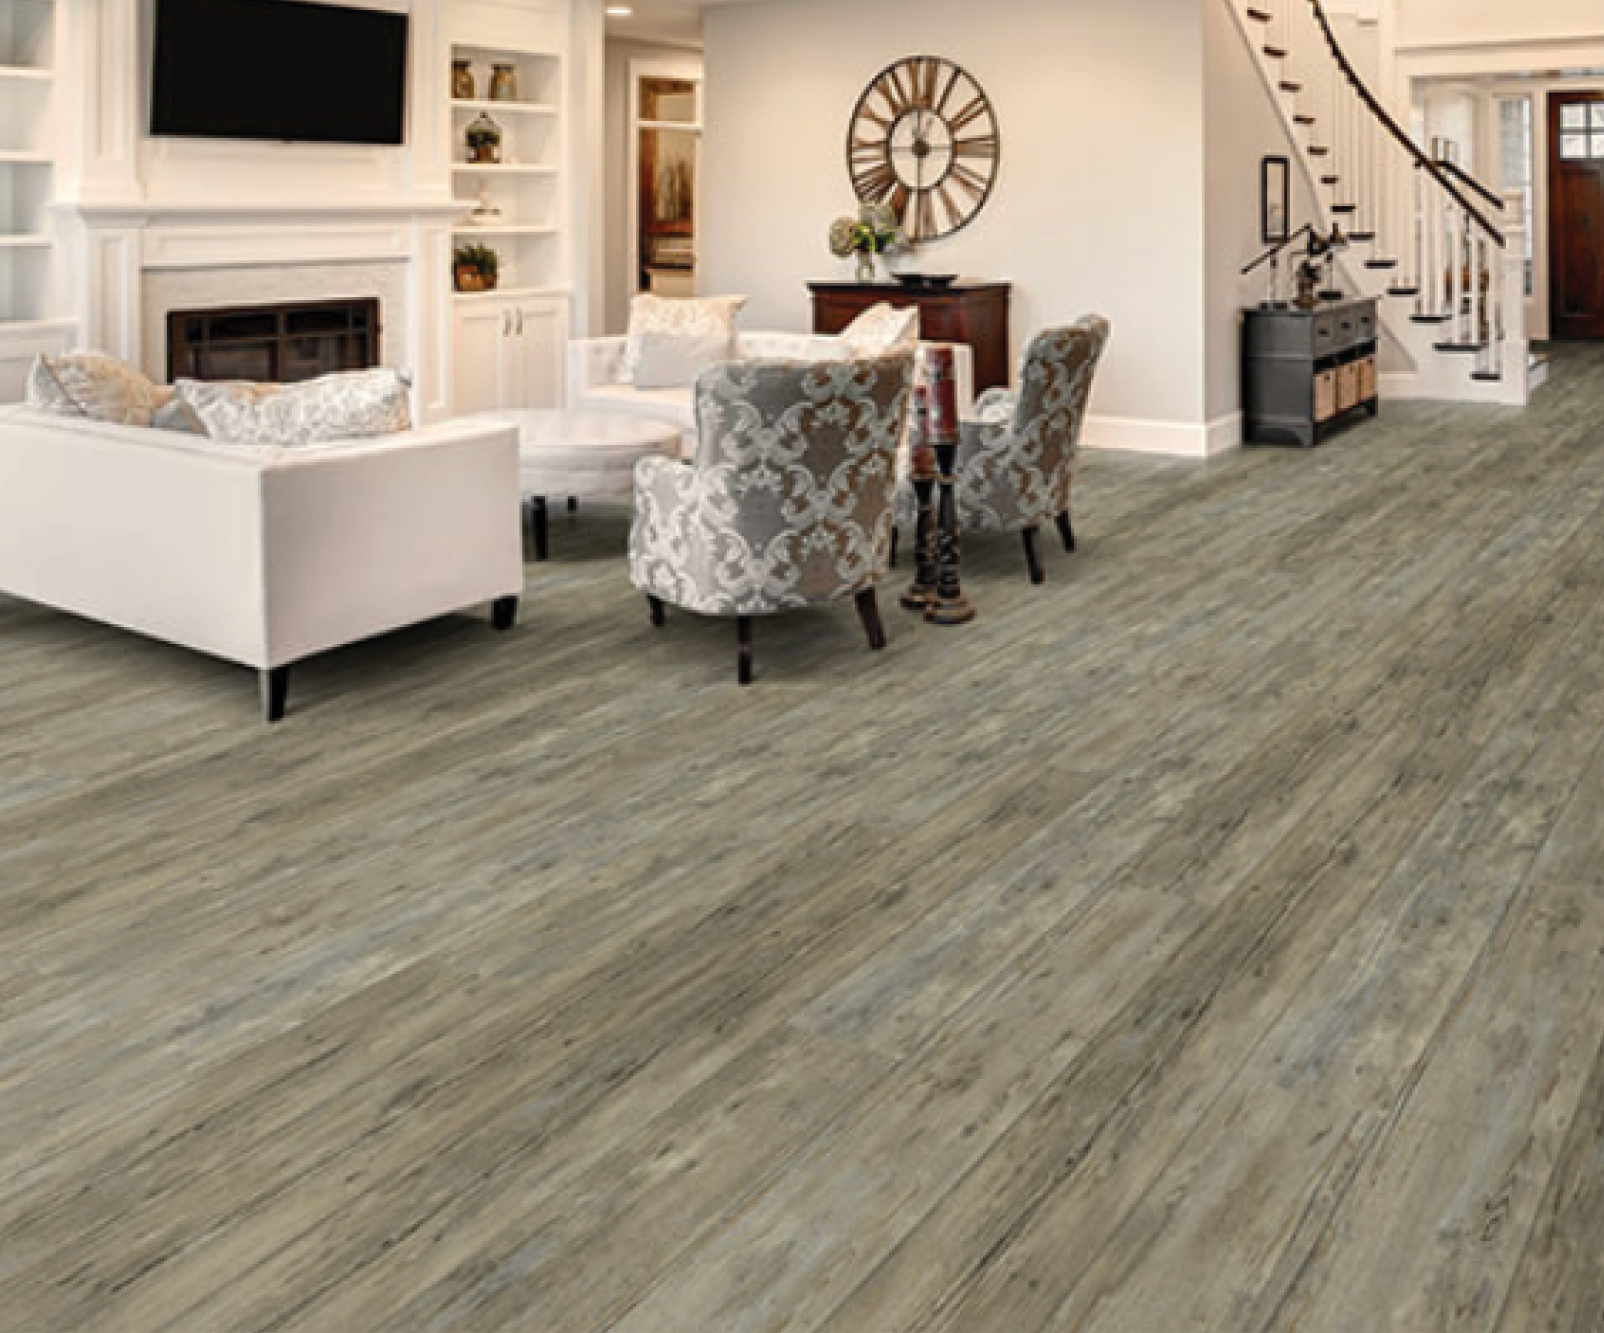 Three Easy Steps to Find the Perfect Flooring